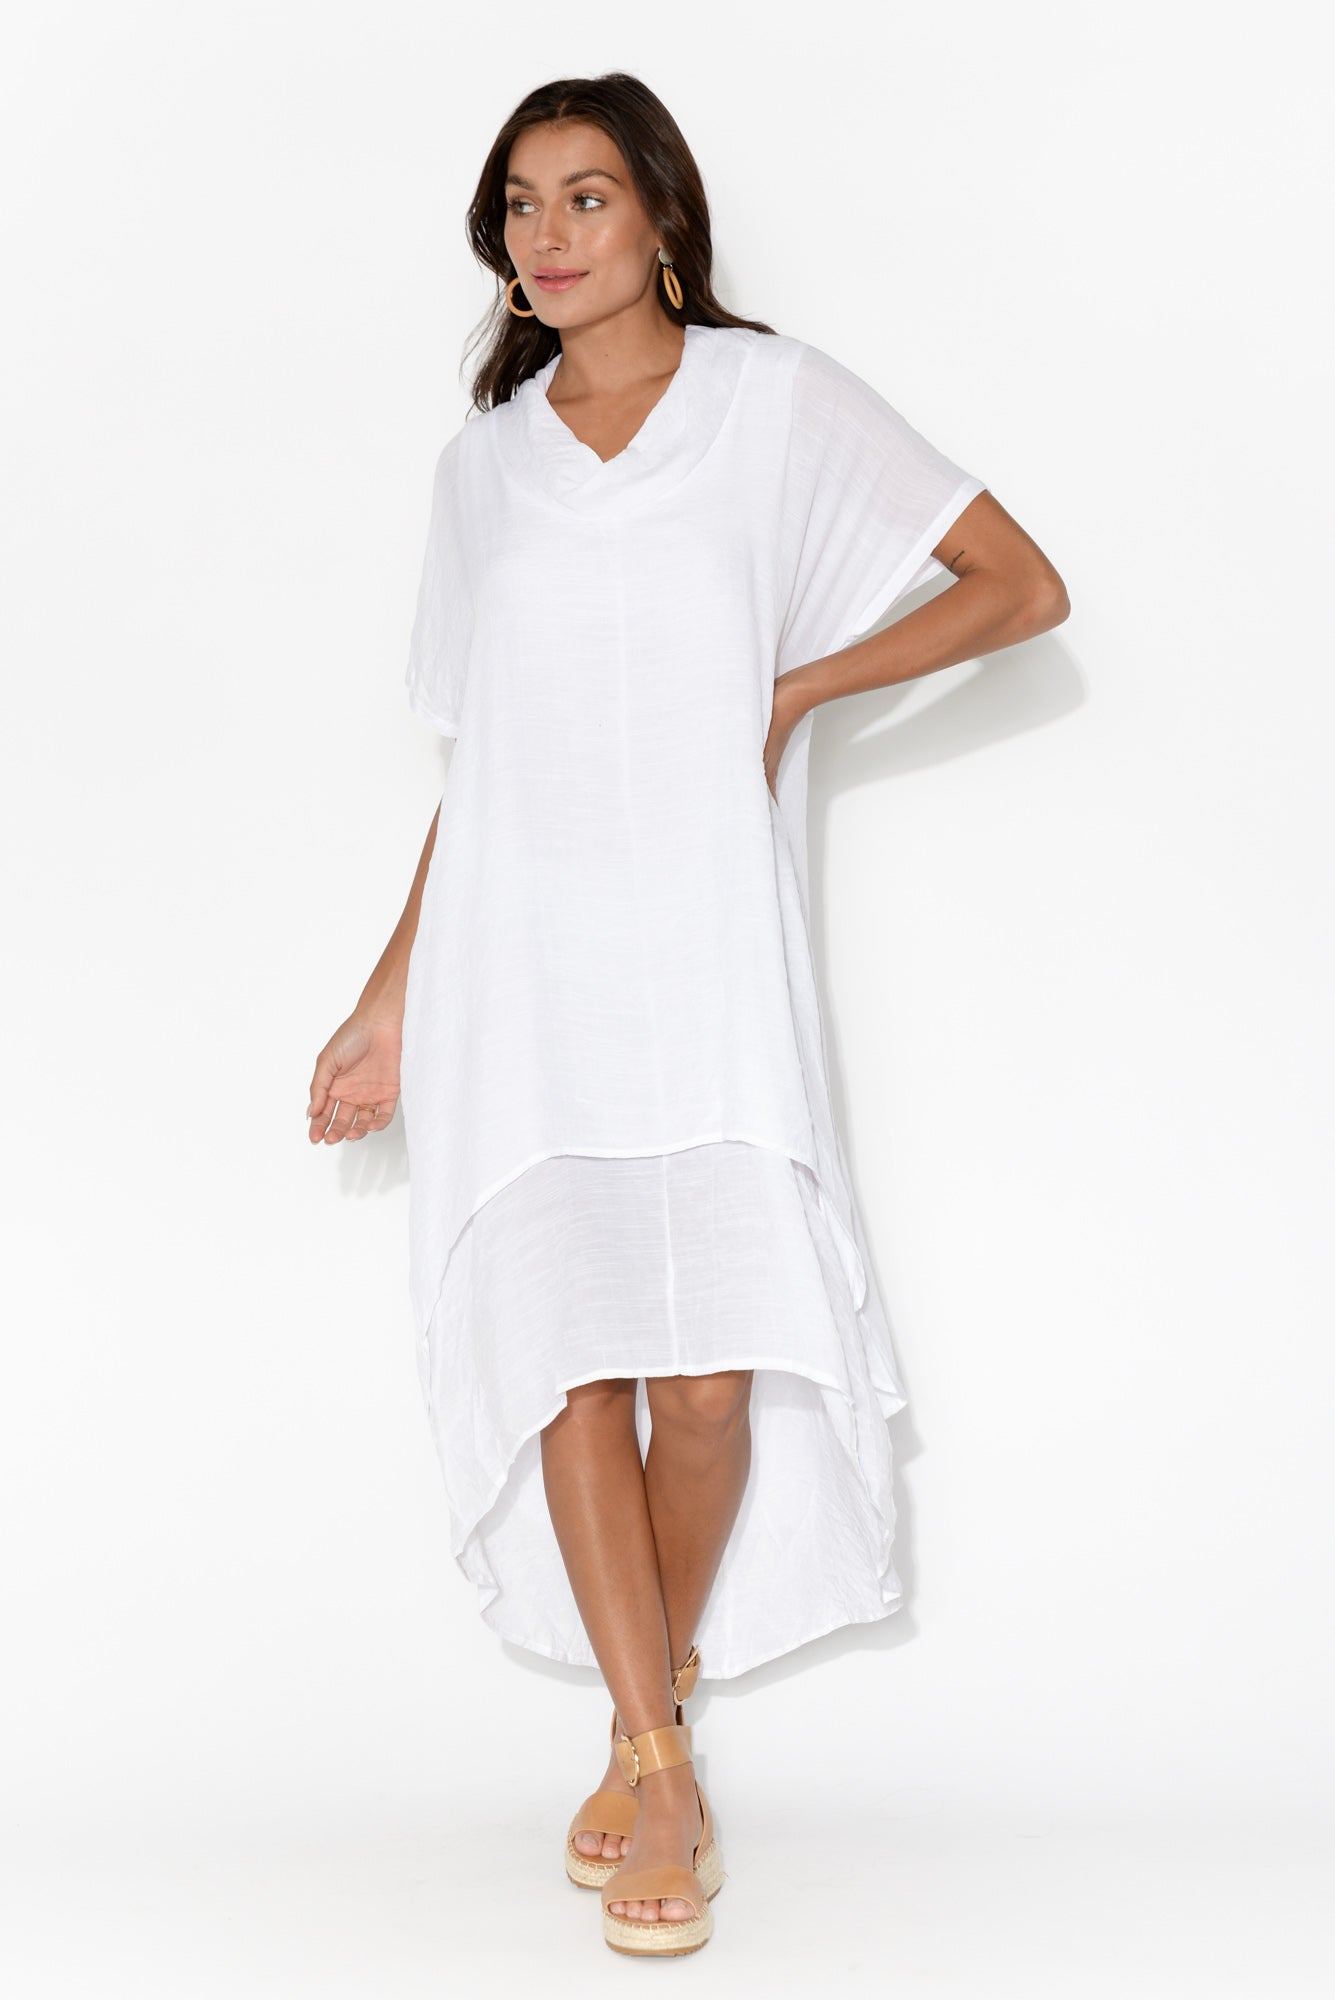 Tiana White Cotton Blend Tier Dress